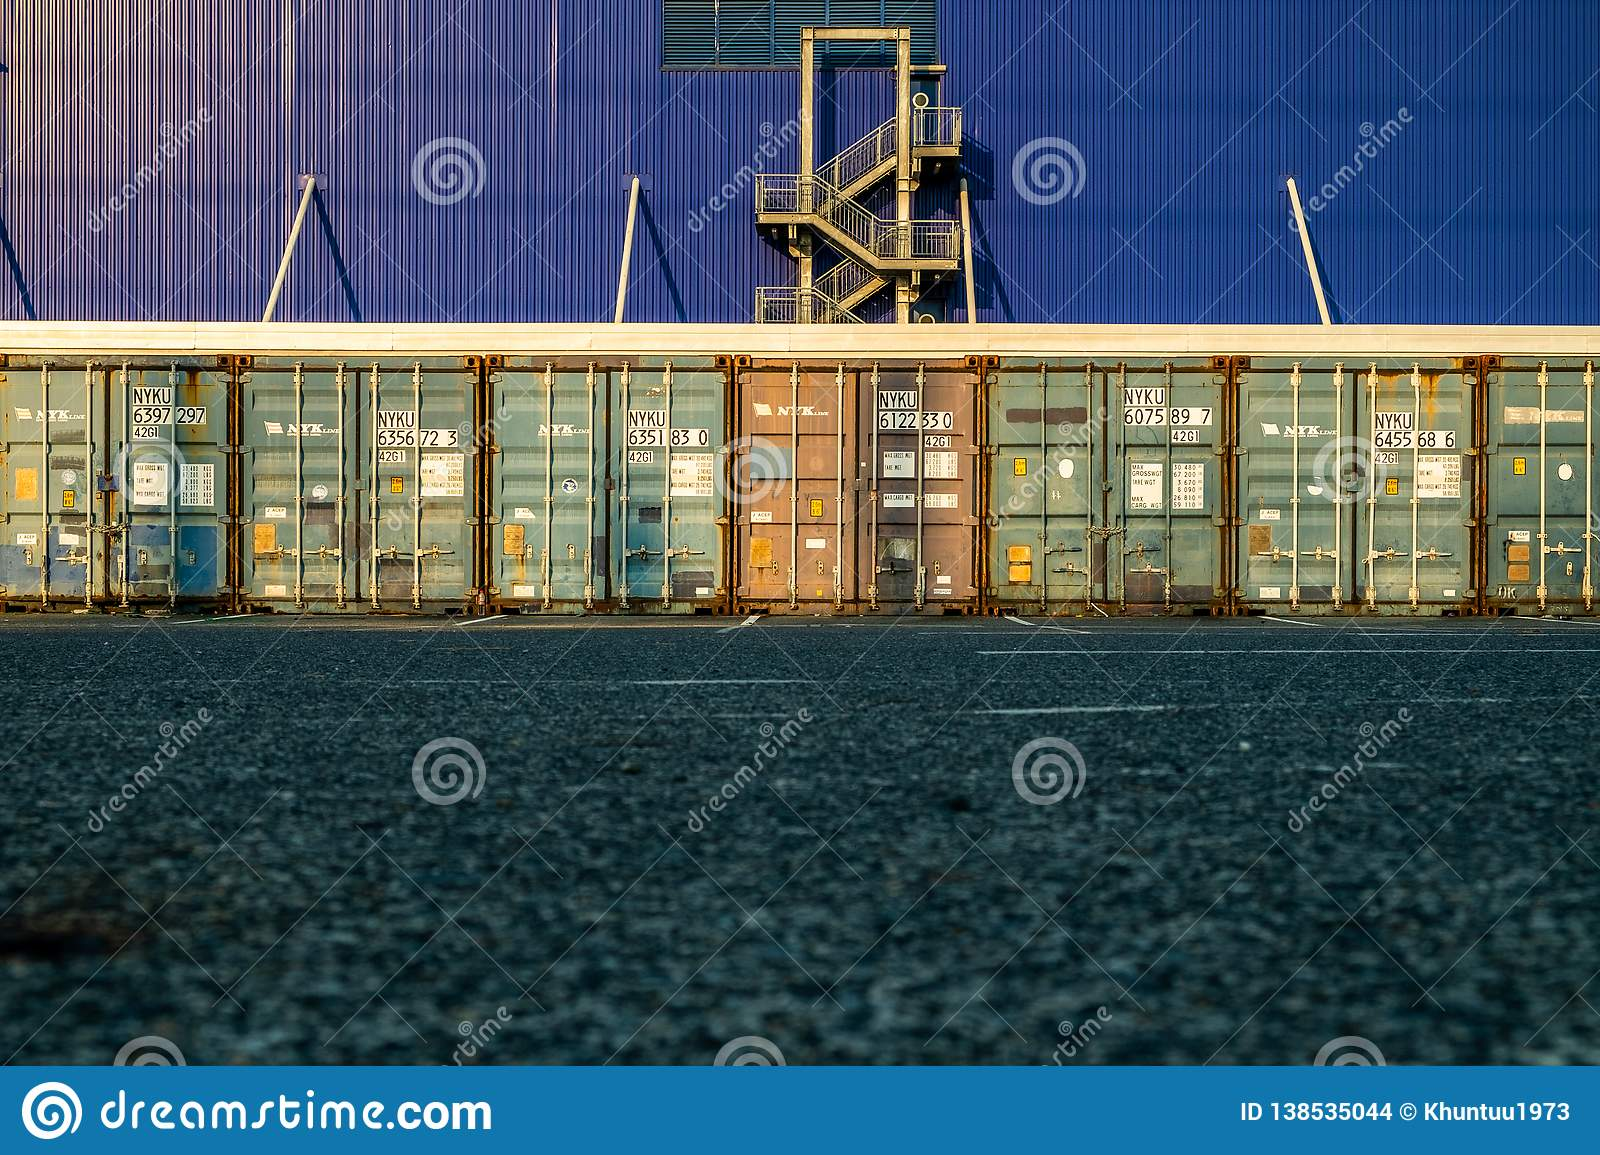 View Of Many Shipping Containers Doors With Fire Escape